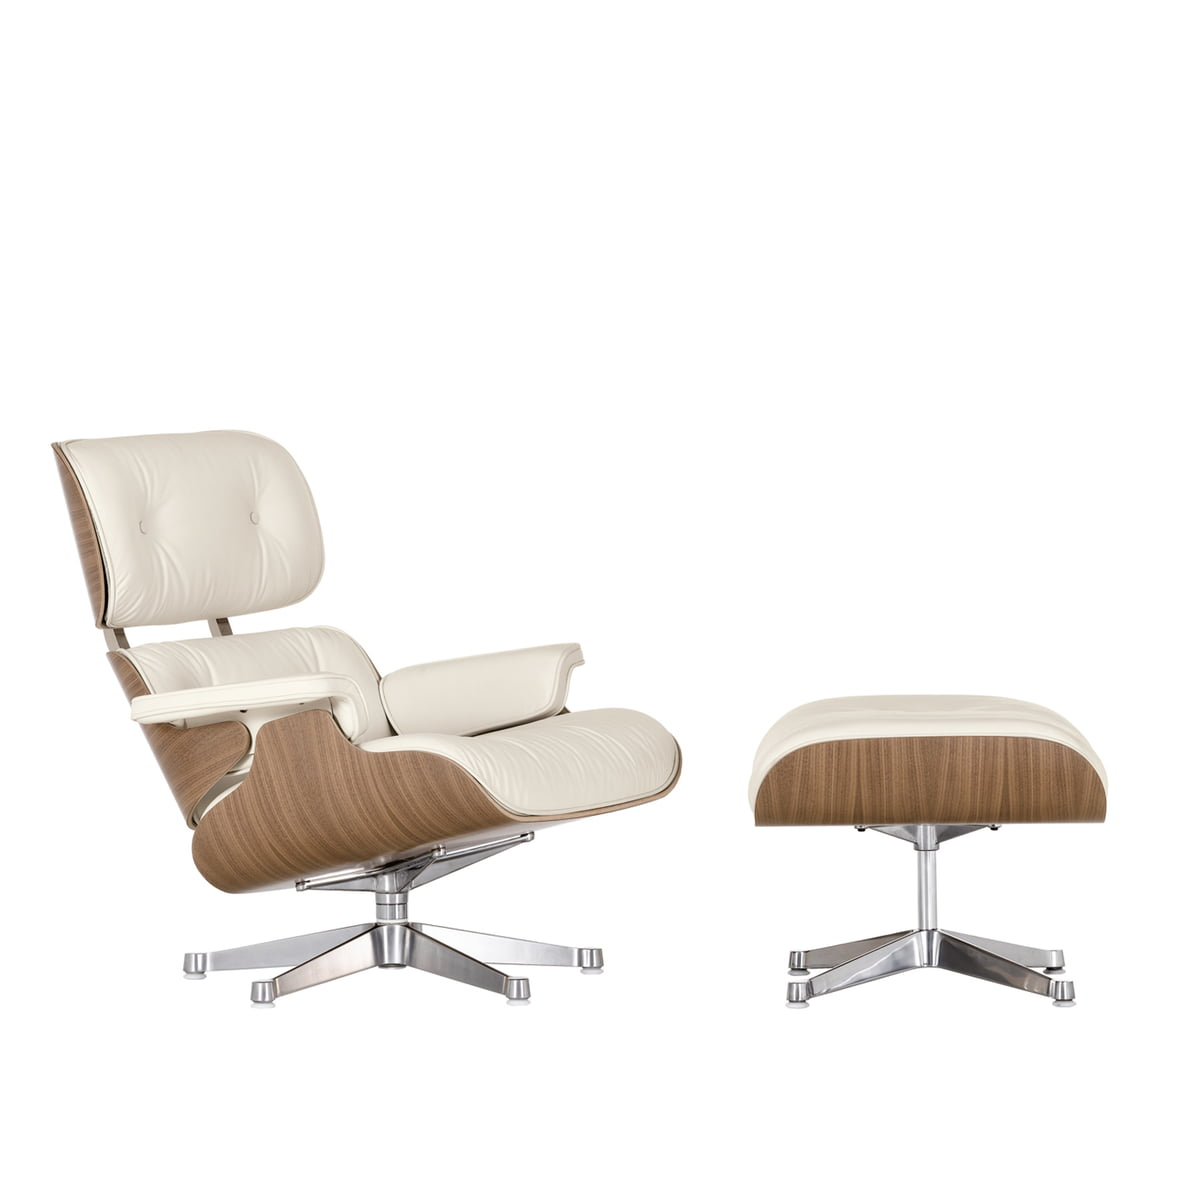 Attraktiv Vitra Lounge Chair + Ottoman   Walnut, White, Polished